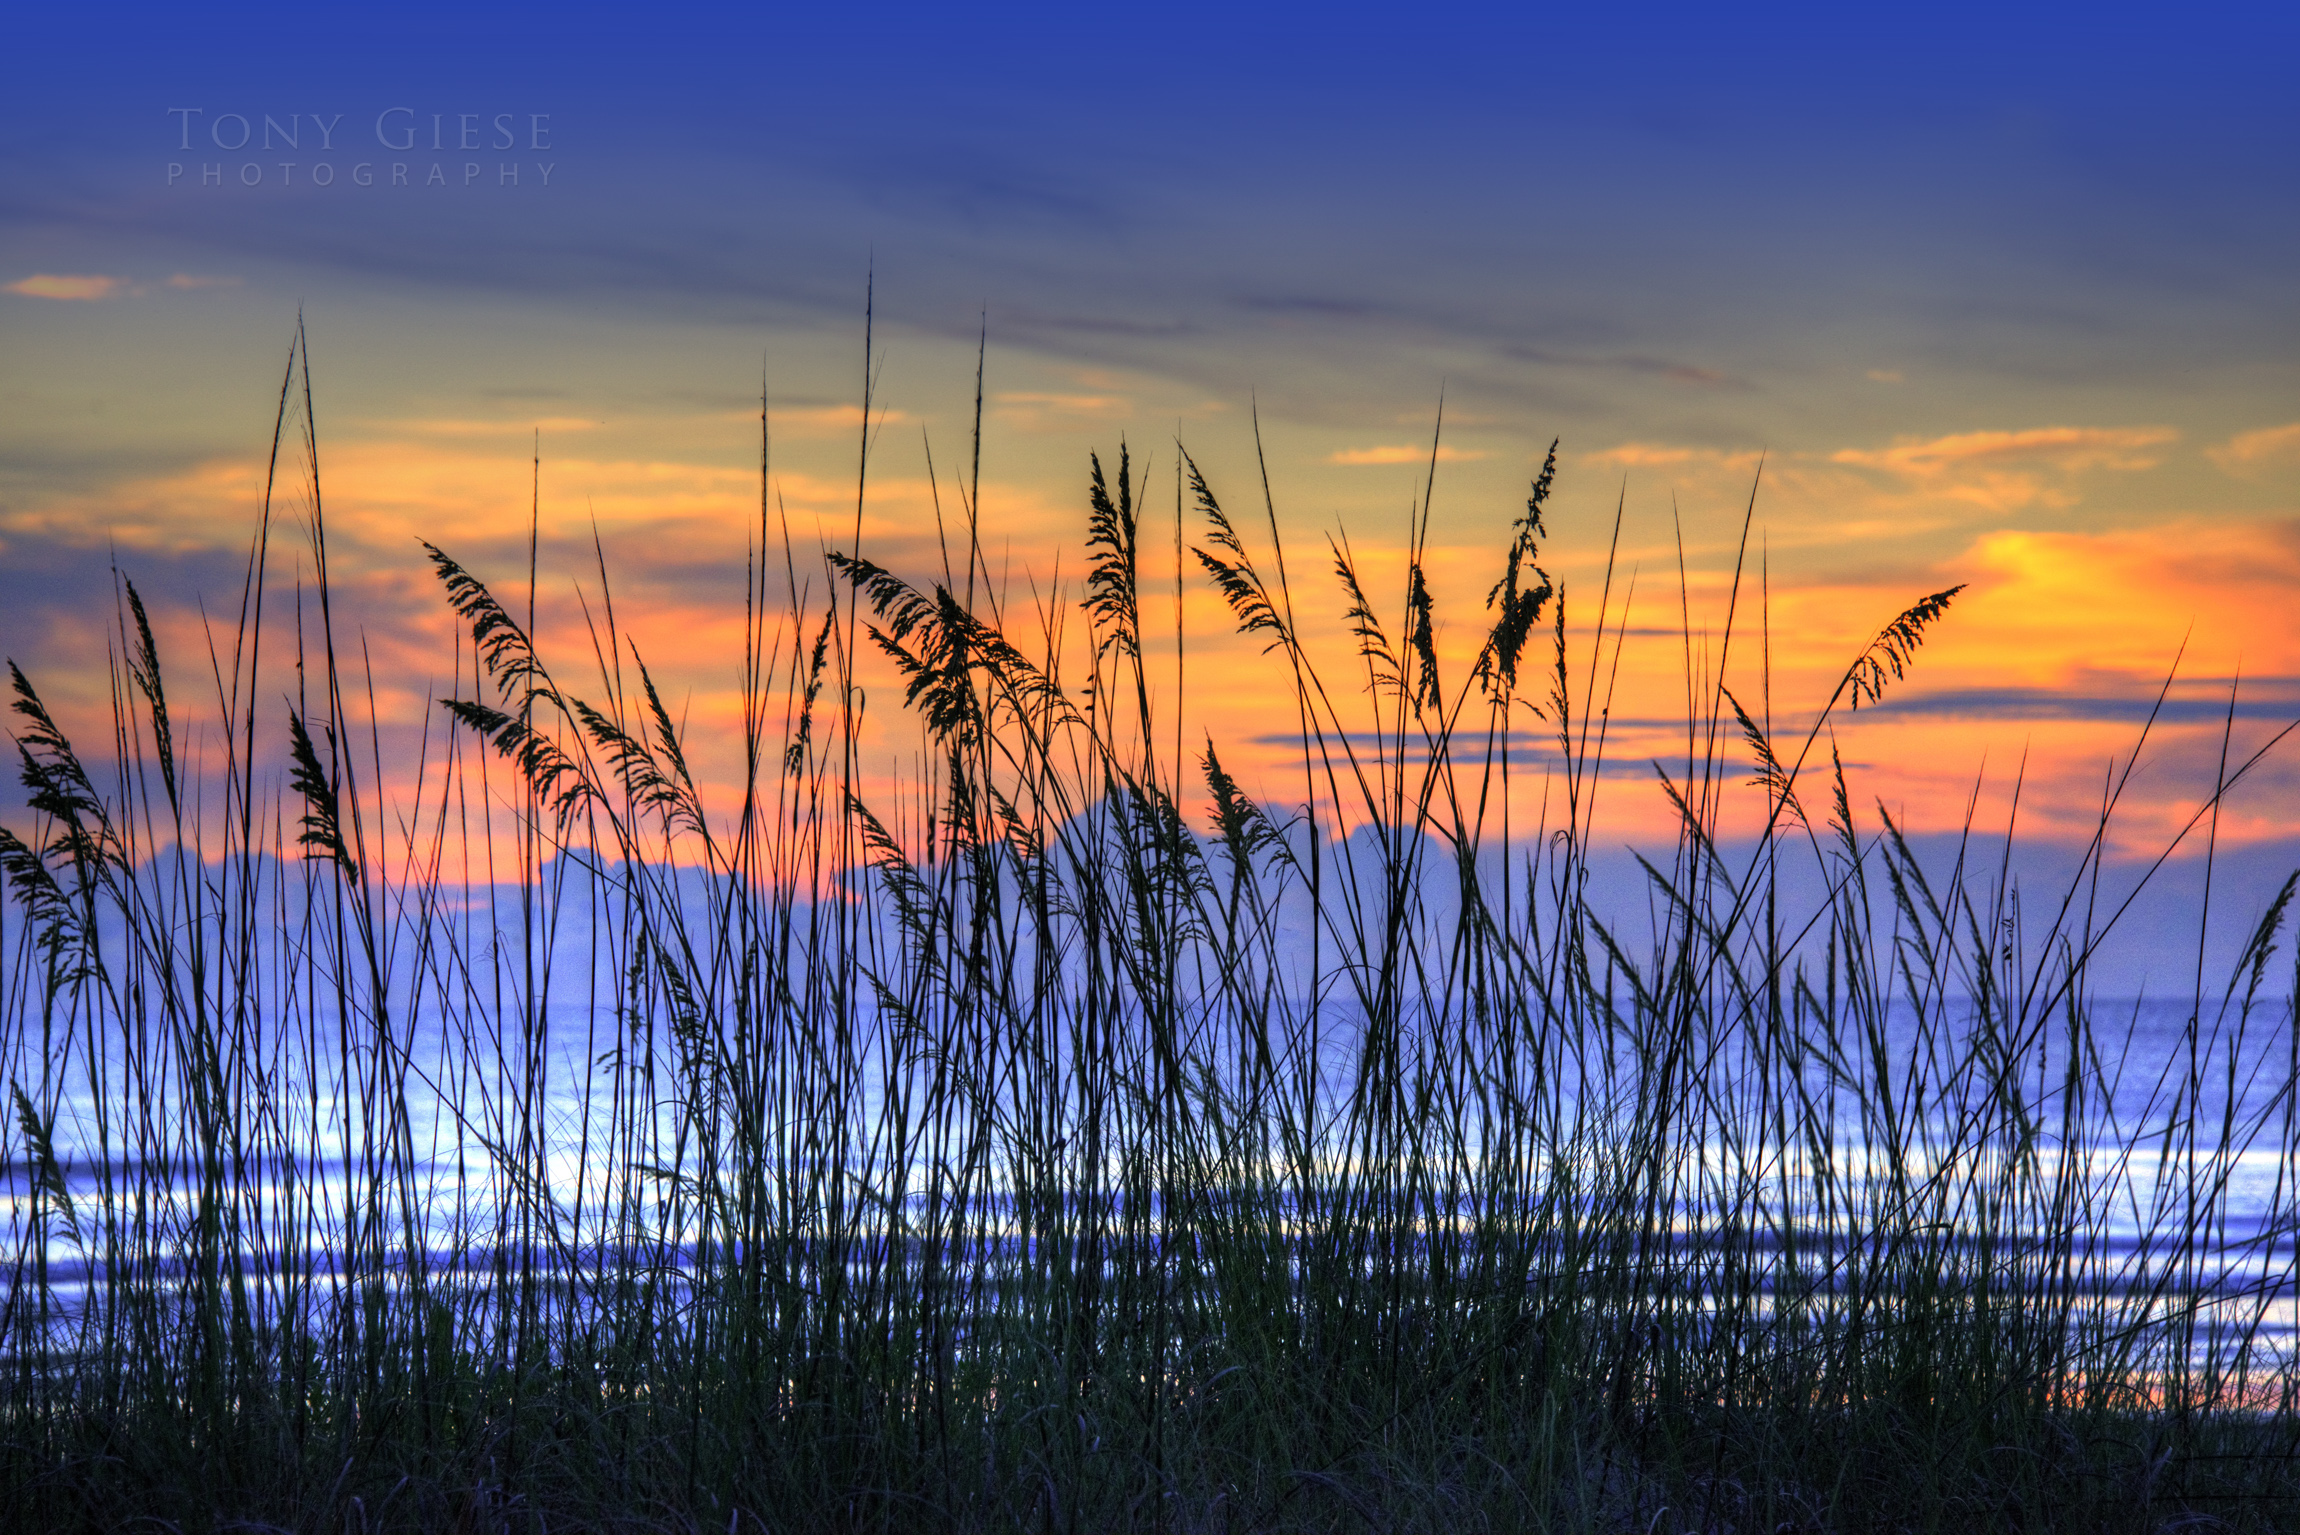 Sea Oats on New Smyrna Beach, Florida. Photo by Tony Giese Photography.